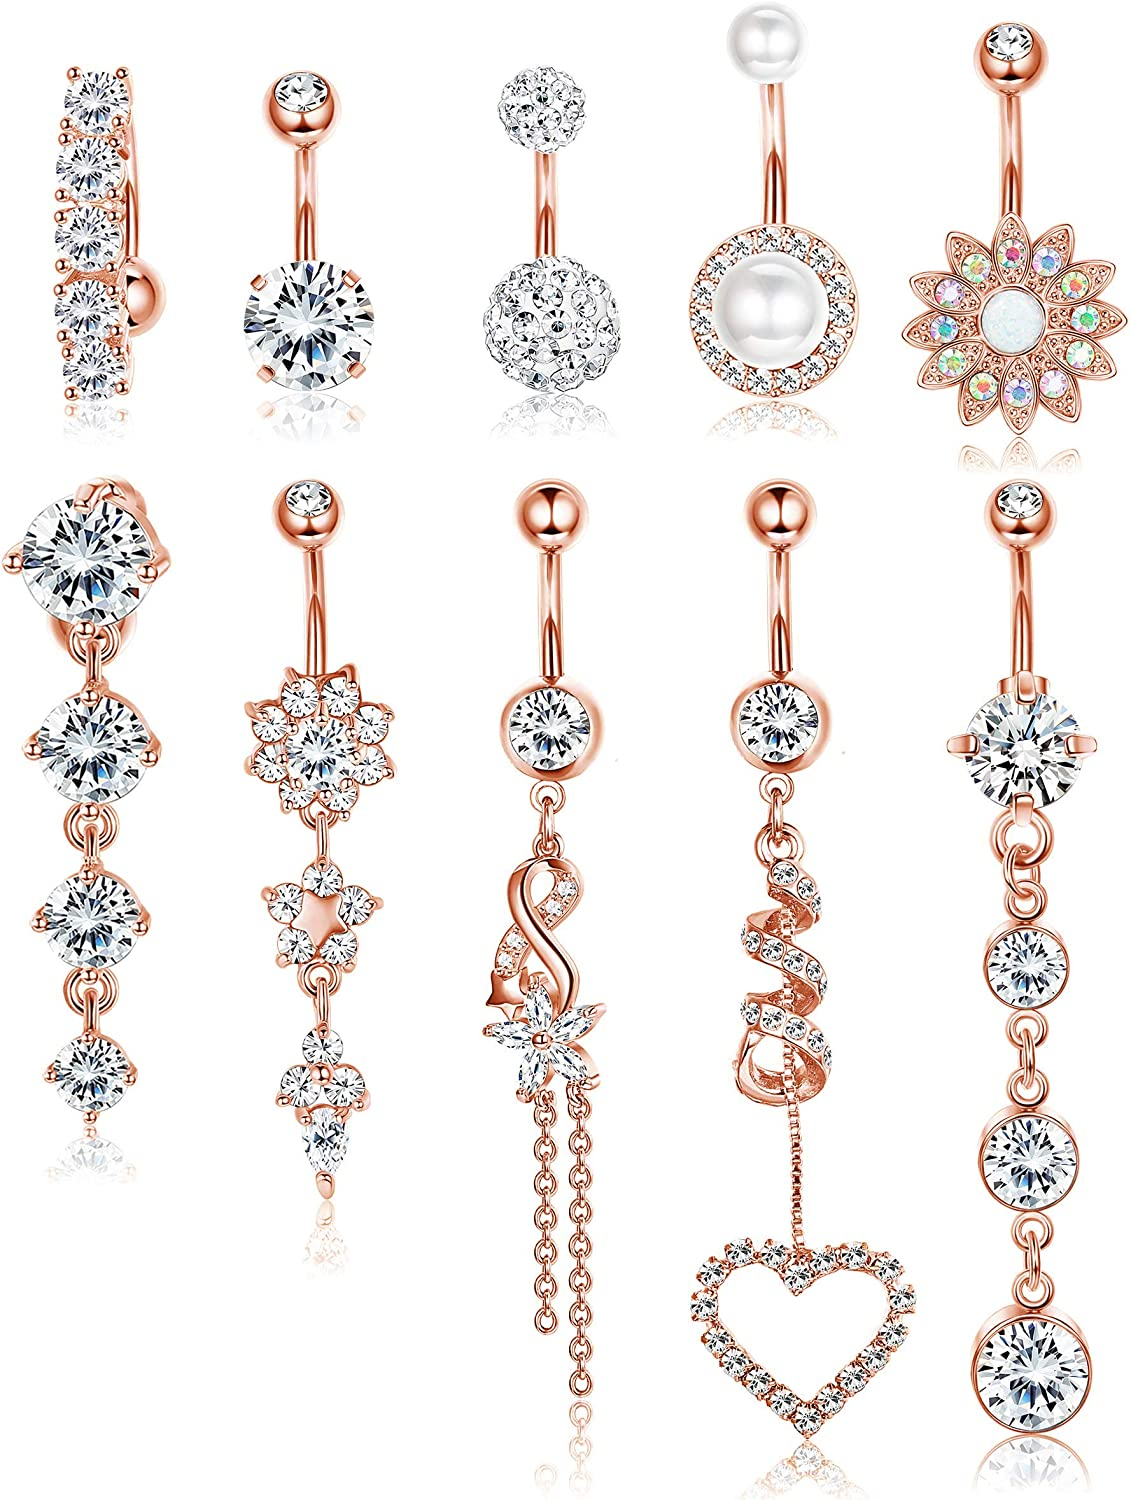 Udalyn 10 PCS Belly Button Rings for Women Girls Navel Rings Surgical Steel 14 g Body Jewelry for Women Piercings Belly